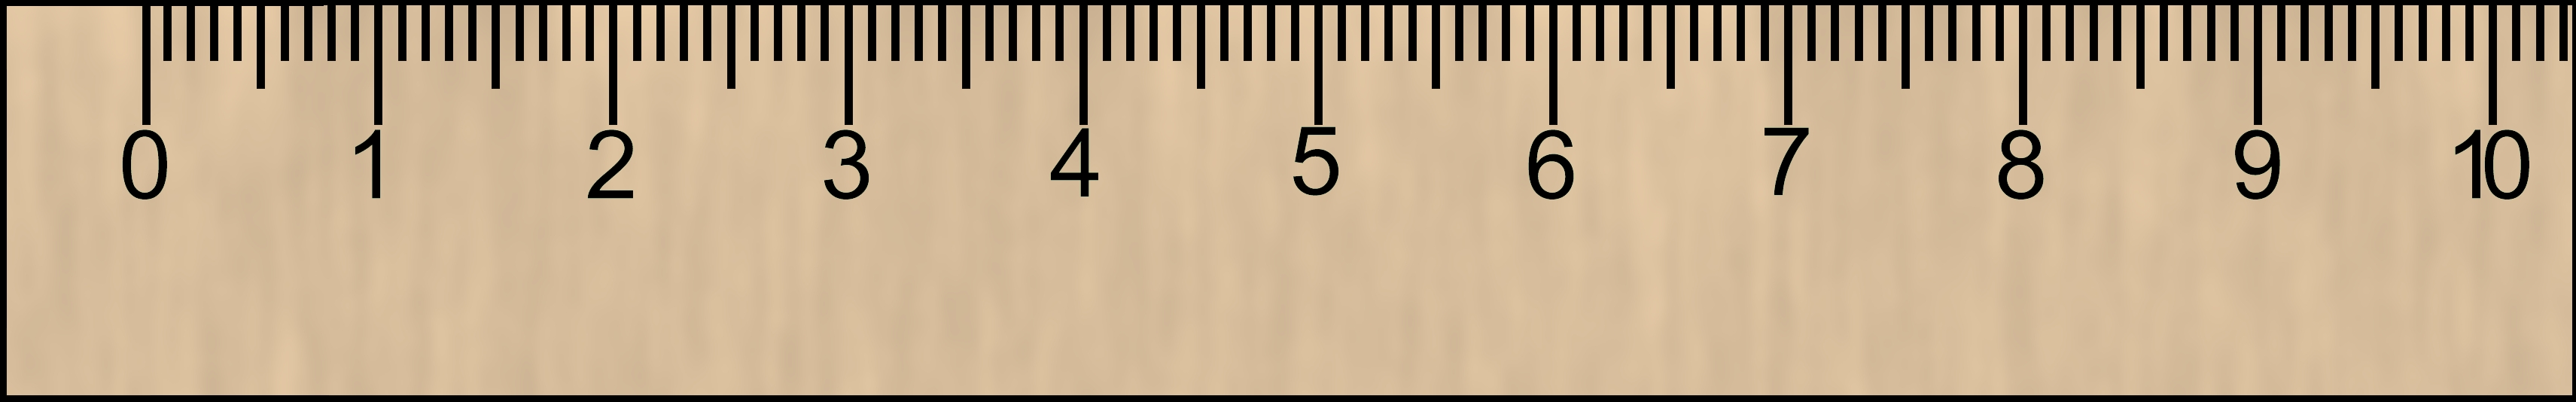 Ruler clipart long ruler. Unique design digital collection